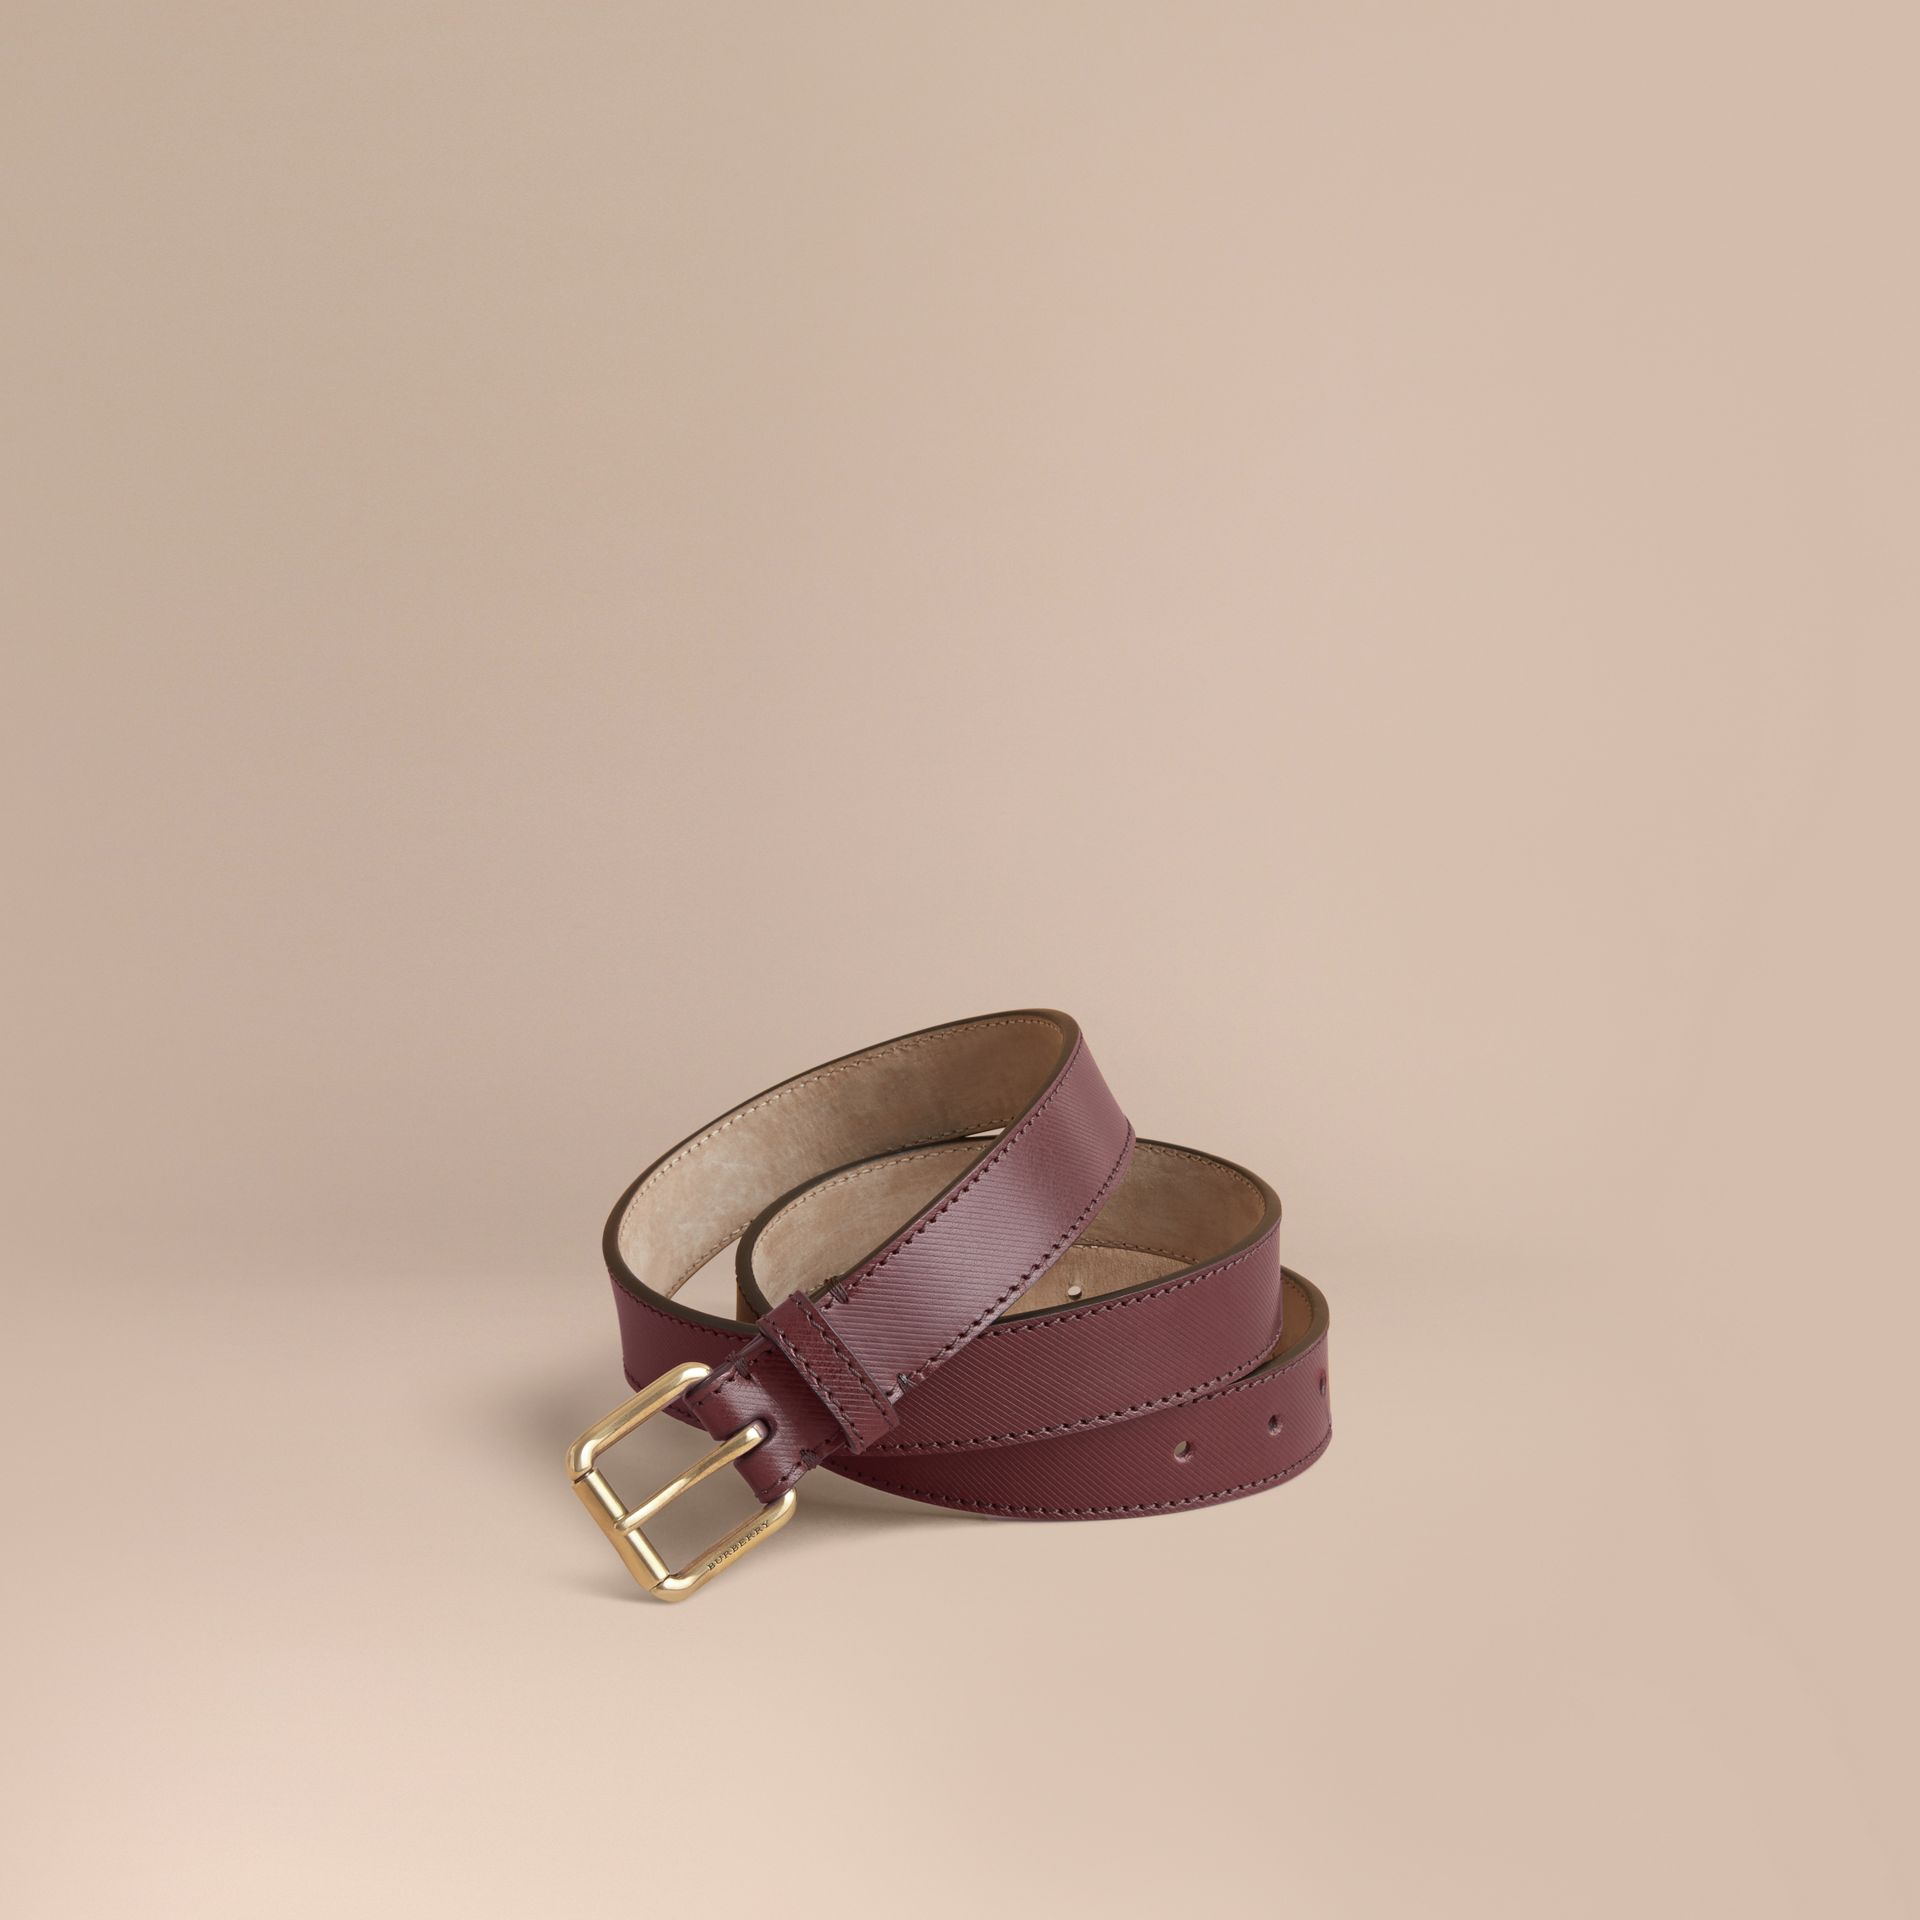 Trench Leather Belt in Wine - Men | Burberry Singapore - gallery image 1